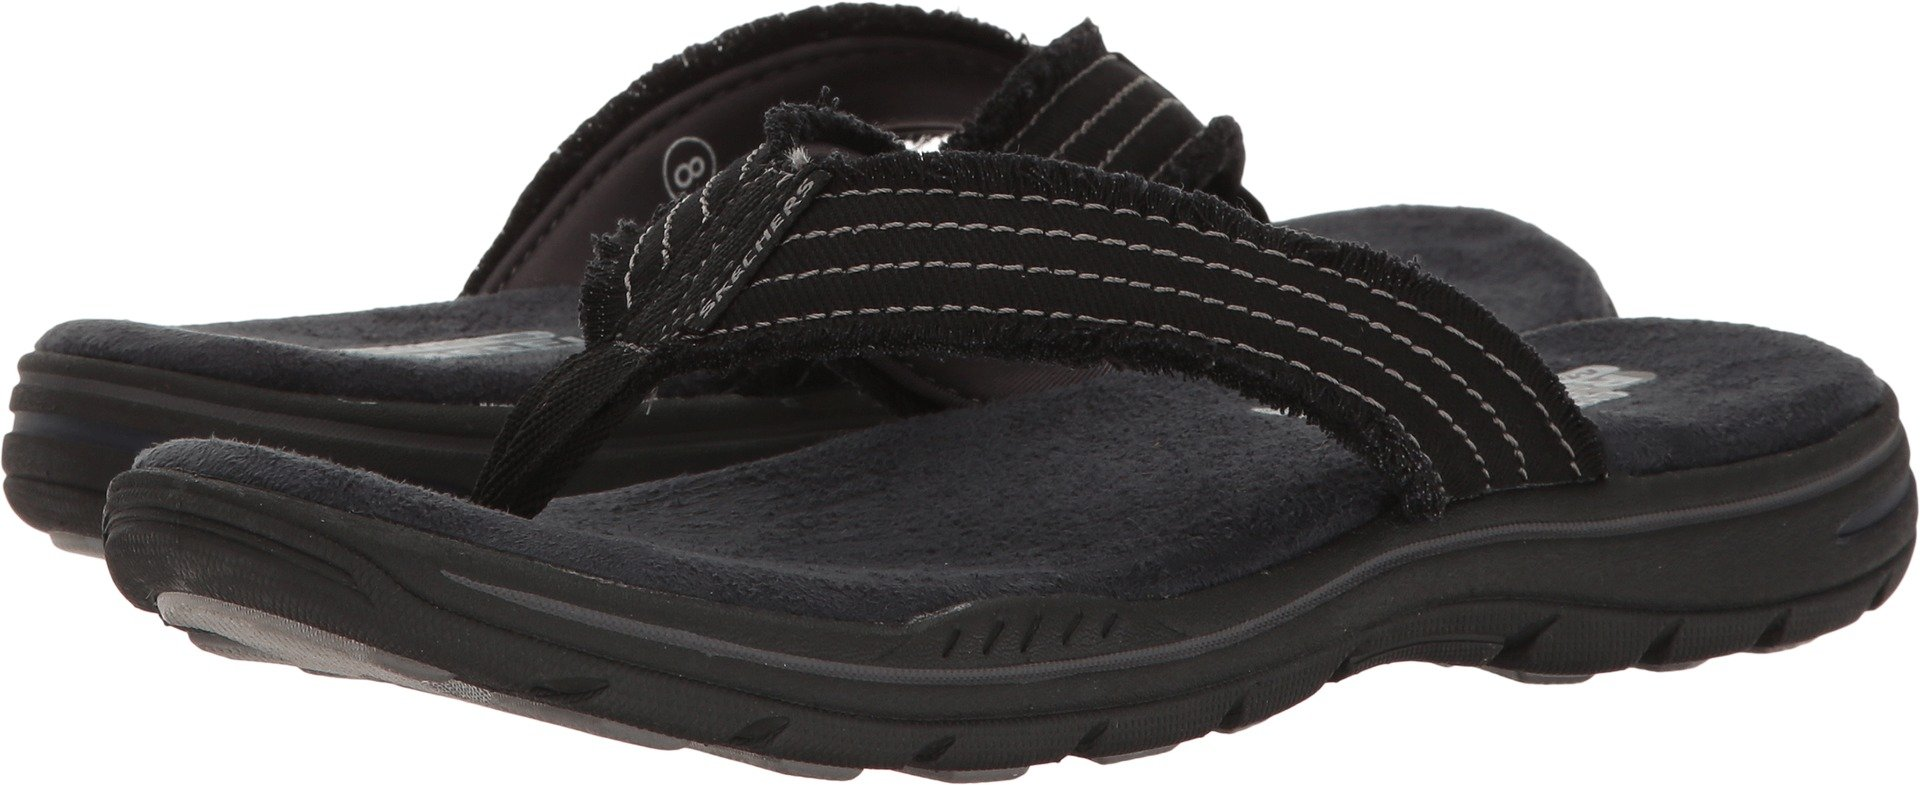 Skechers USA Men's Evented Arven Flip Flop,Black,13 M US